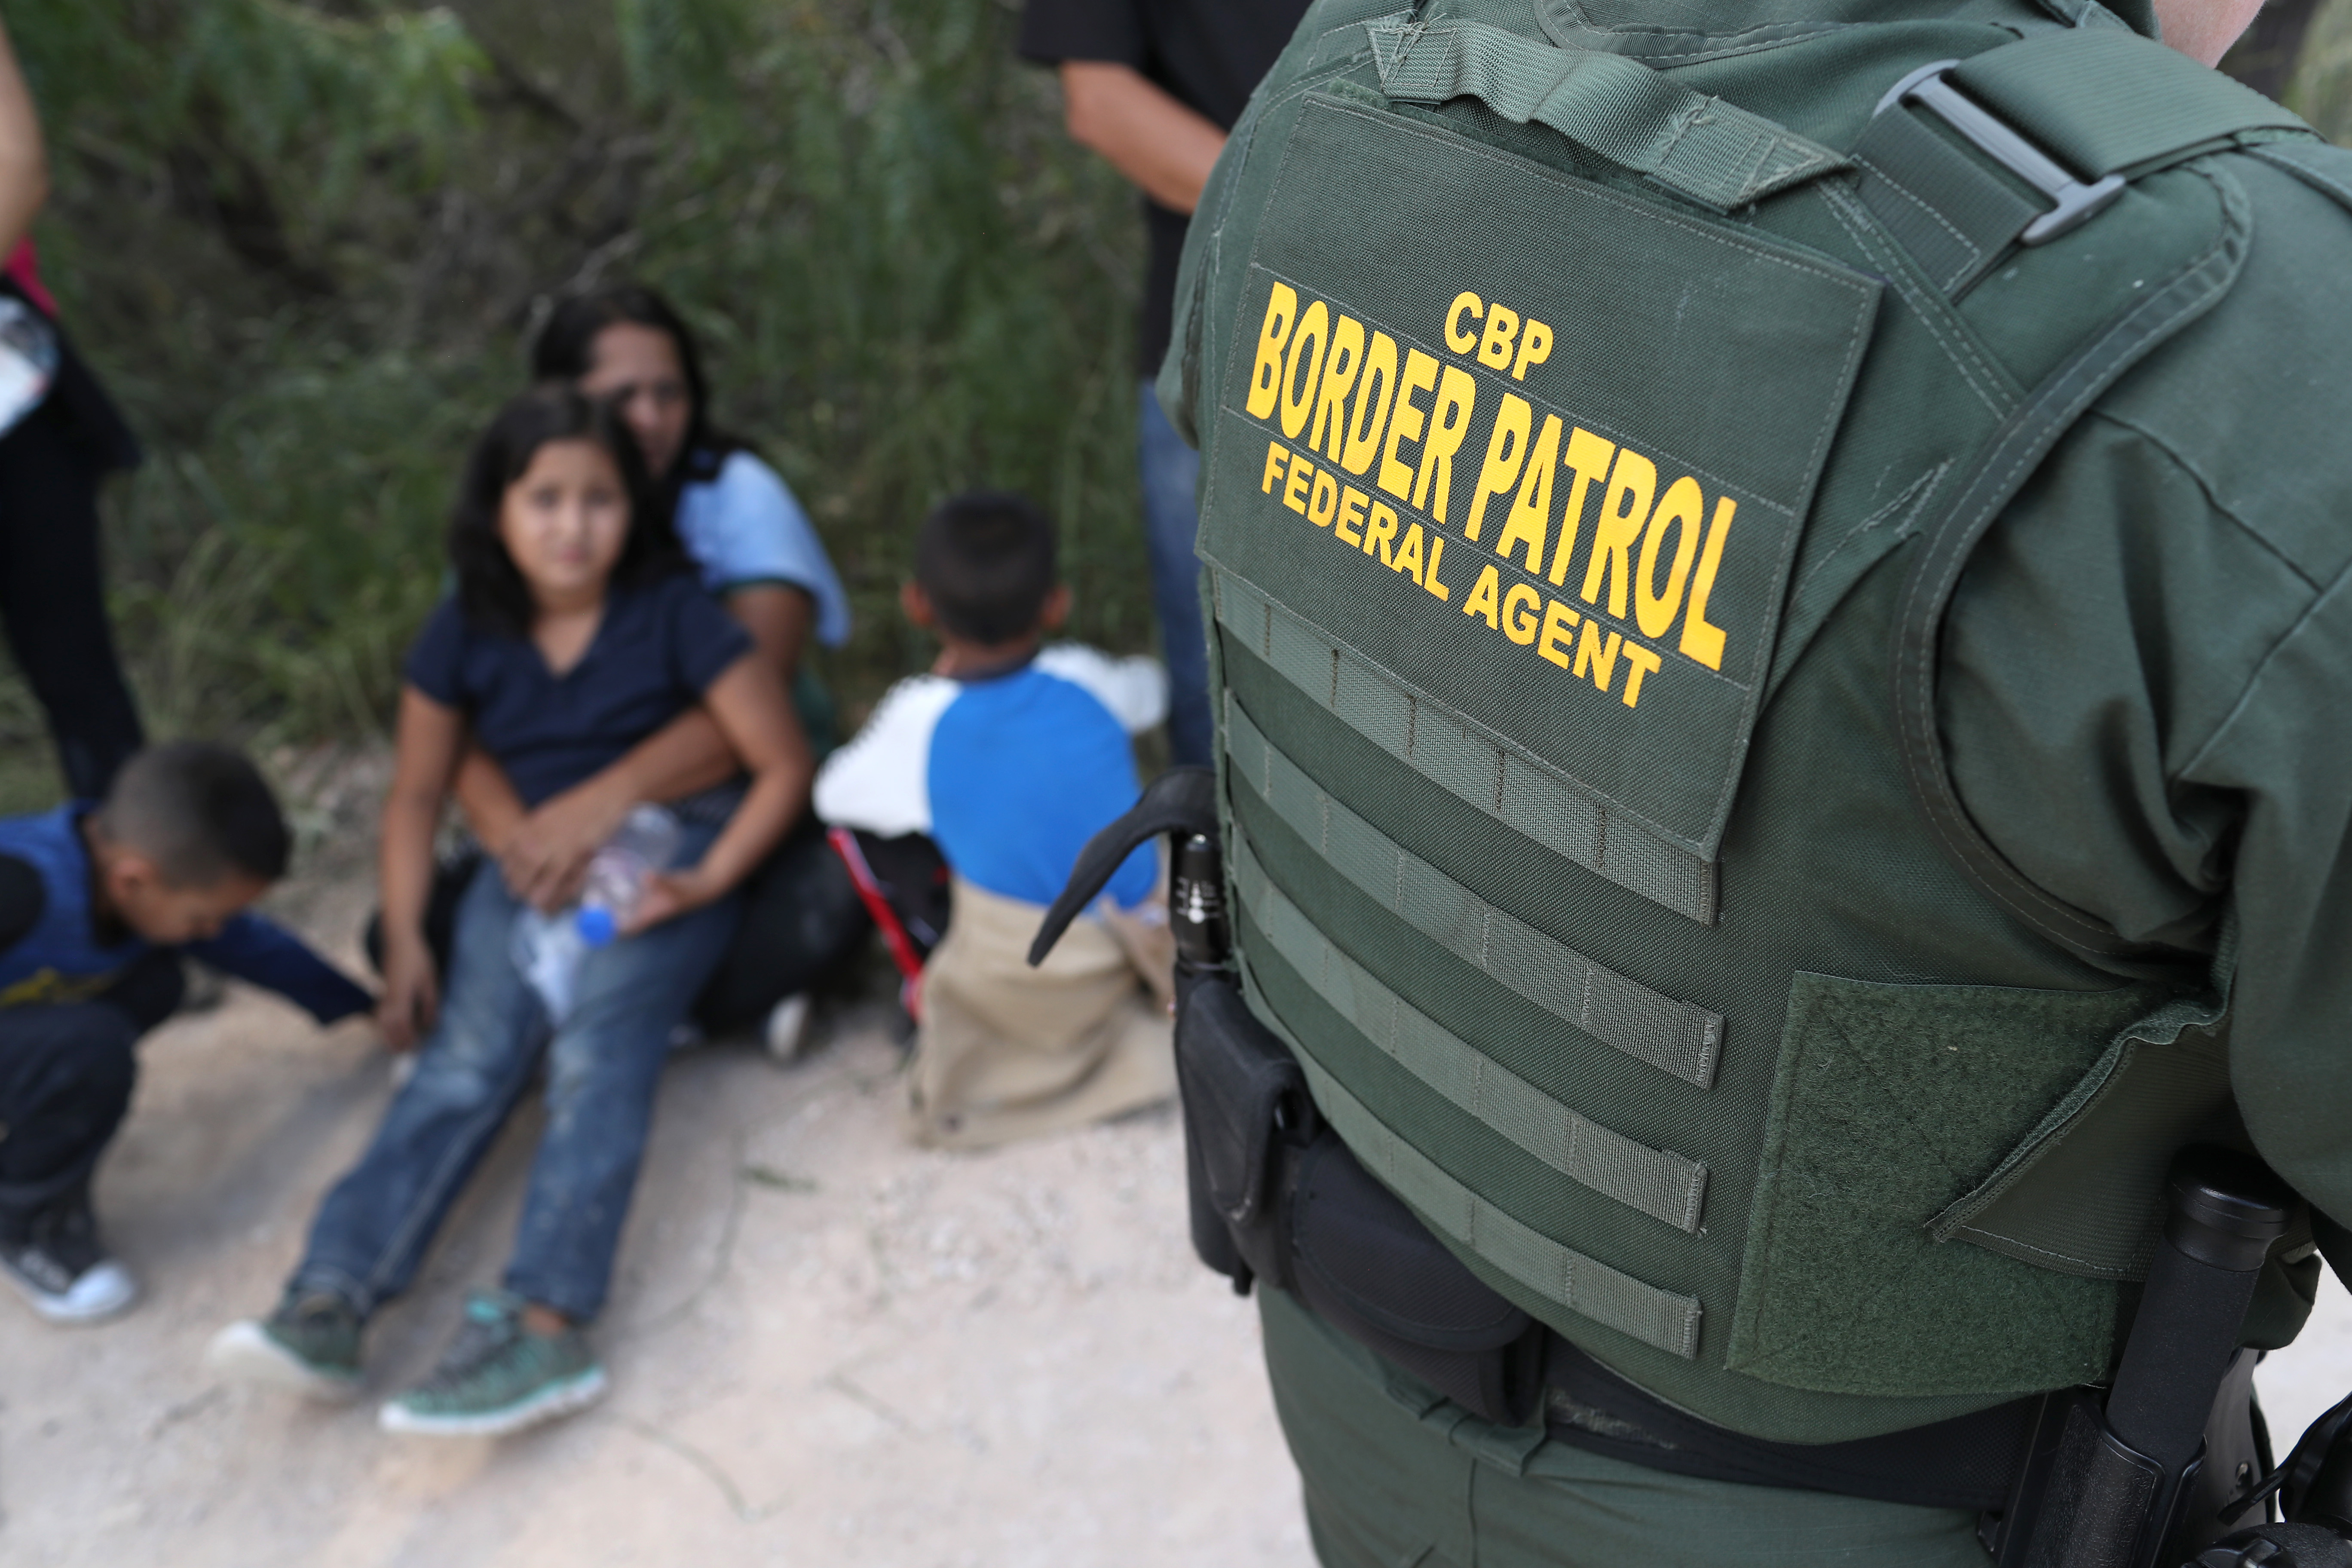 immigration agents take child from mom - 1188×735